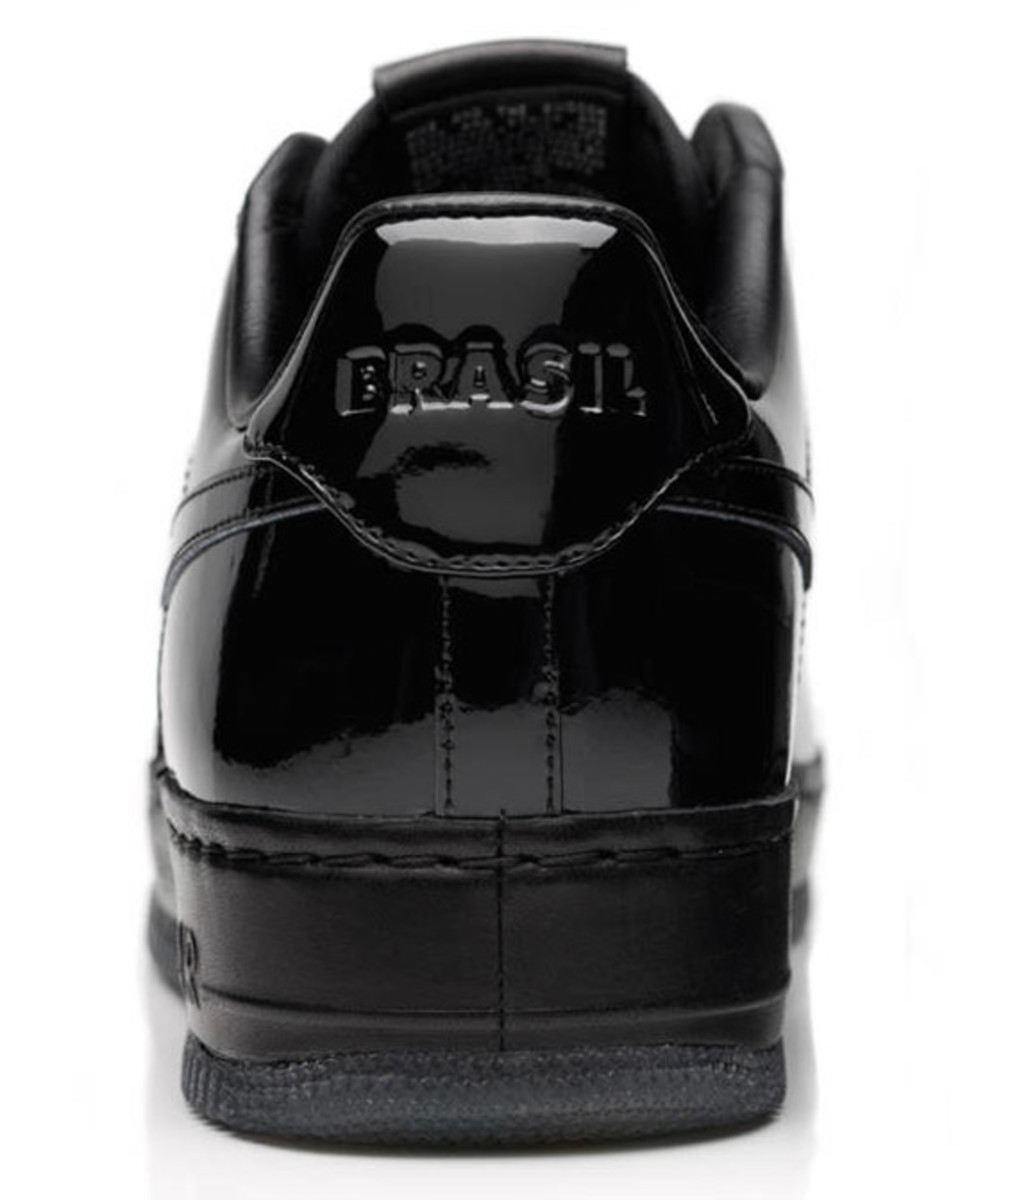 jay-z-nike-air-force-1-all-black-everything-brazil-07